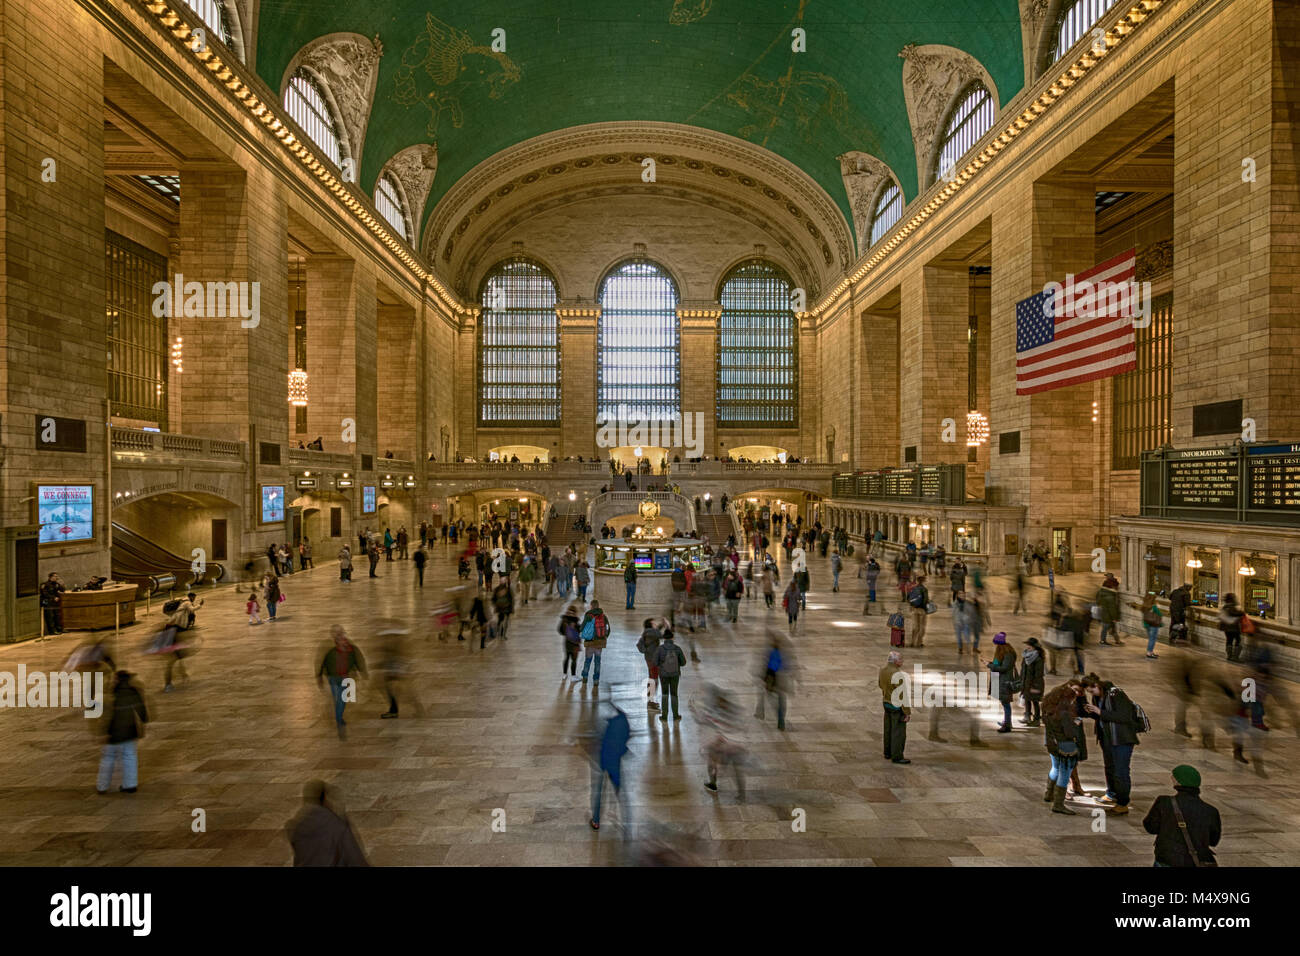 Grand Central Terminal in Midtown Manhattan. - Stock Image